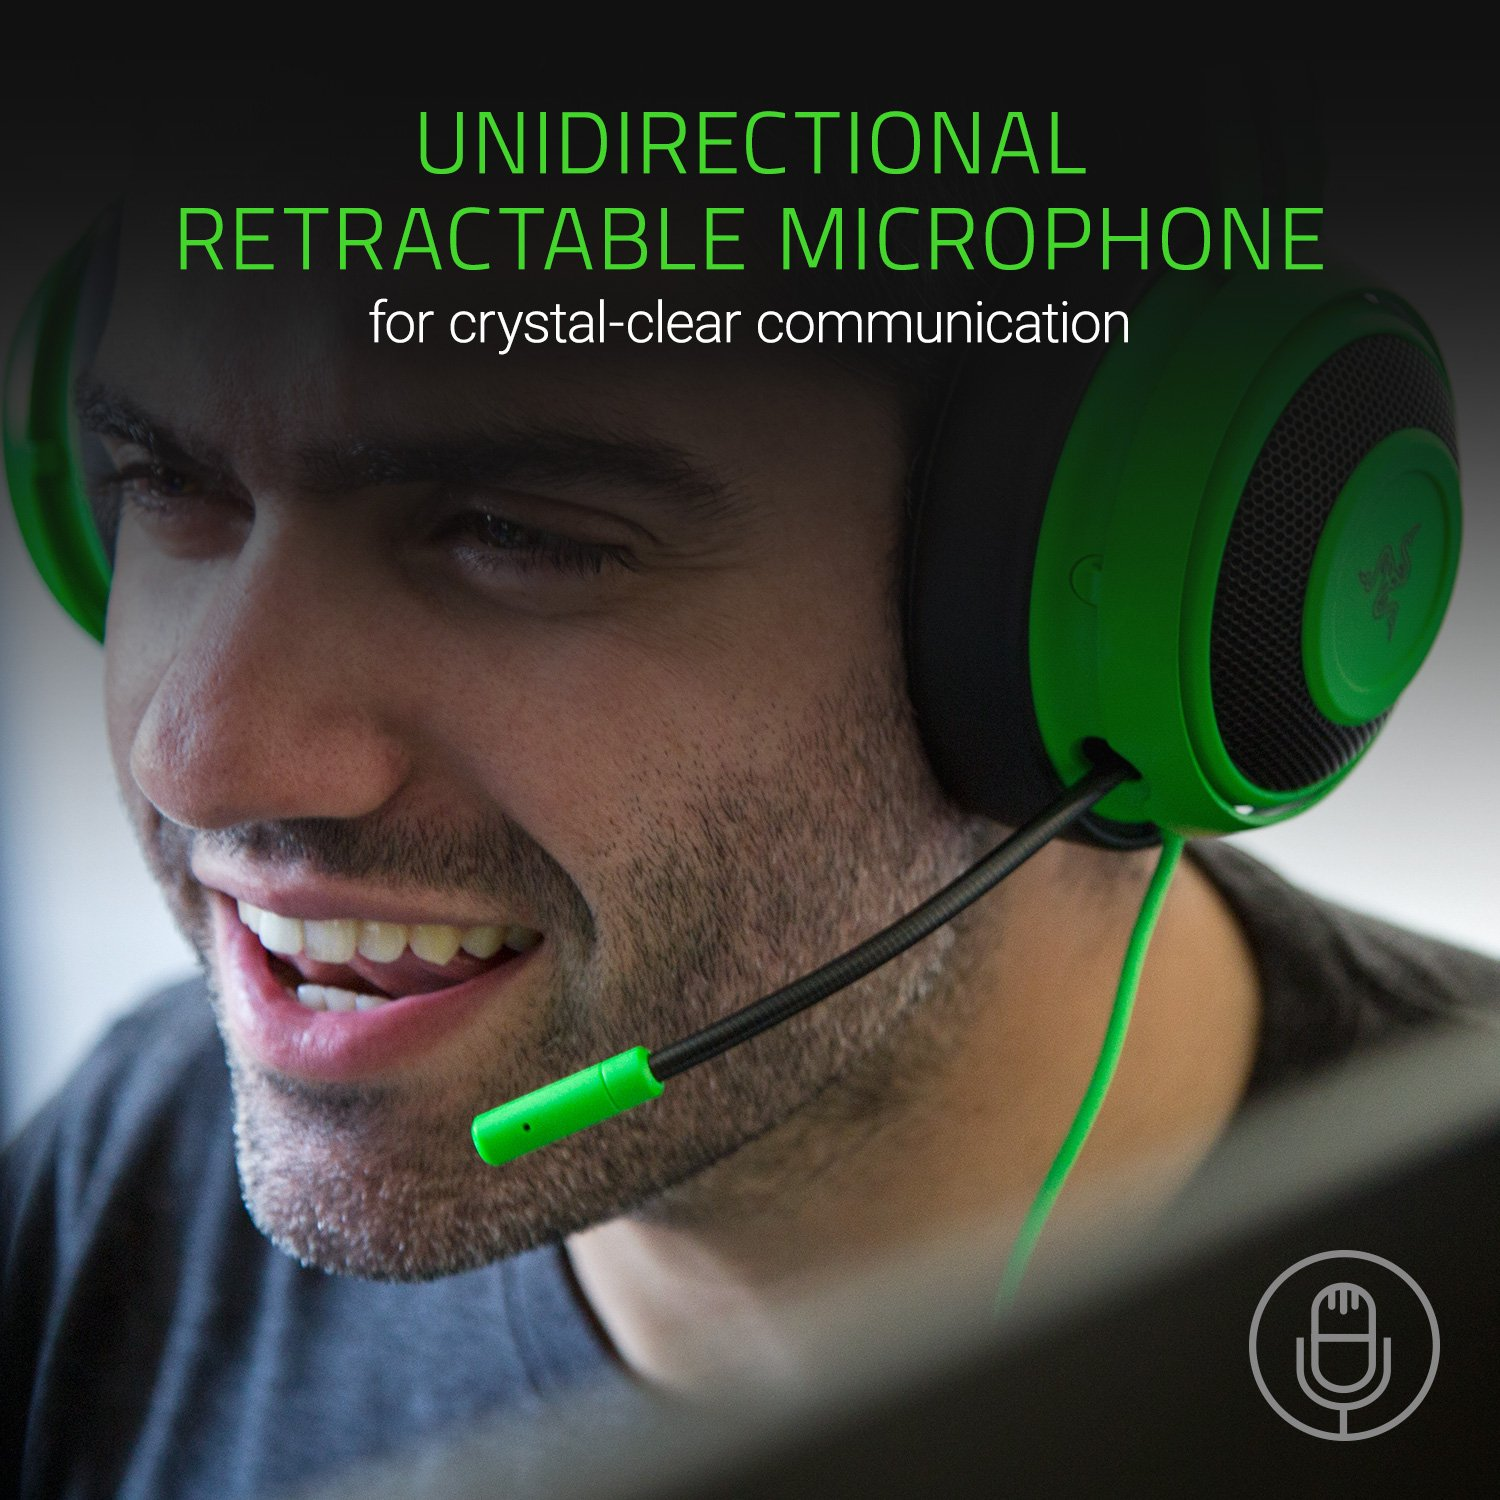 Razer Kraken Pro V2: Lightweight Aluminum Headband - Retractable Mic - In-Line Remote - Gaming Headset Works with PC, PS4, Xbox One, Switch, & Mobile Devices - Green by Razer (Image #5)